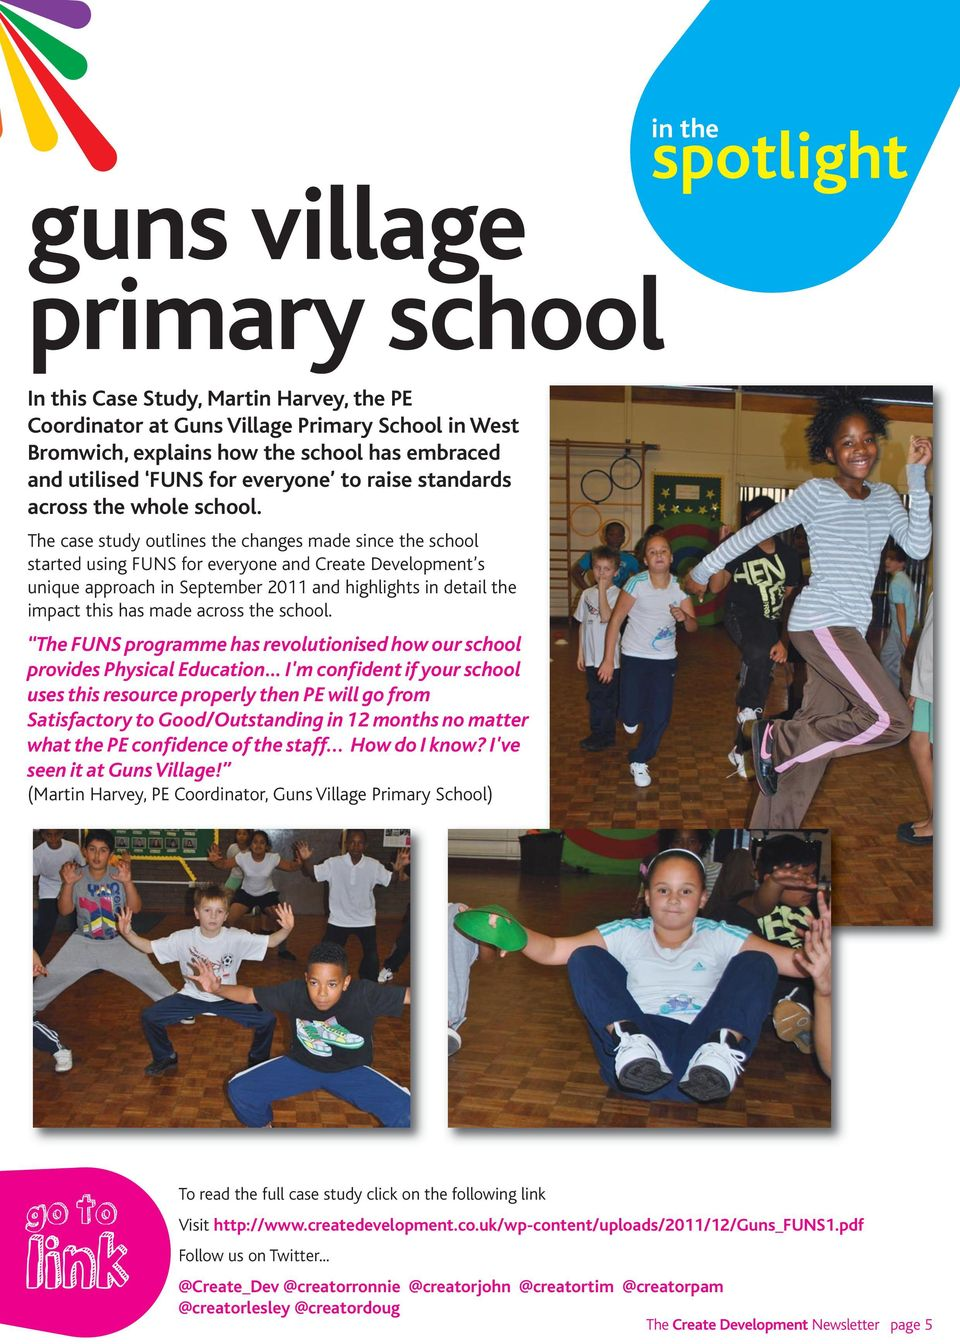 The case study outlines the changes made since the school started using FUNS for everyone and Create Development s unique approach in September 2011 and highlights in detail the impact this has made